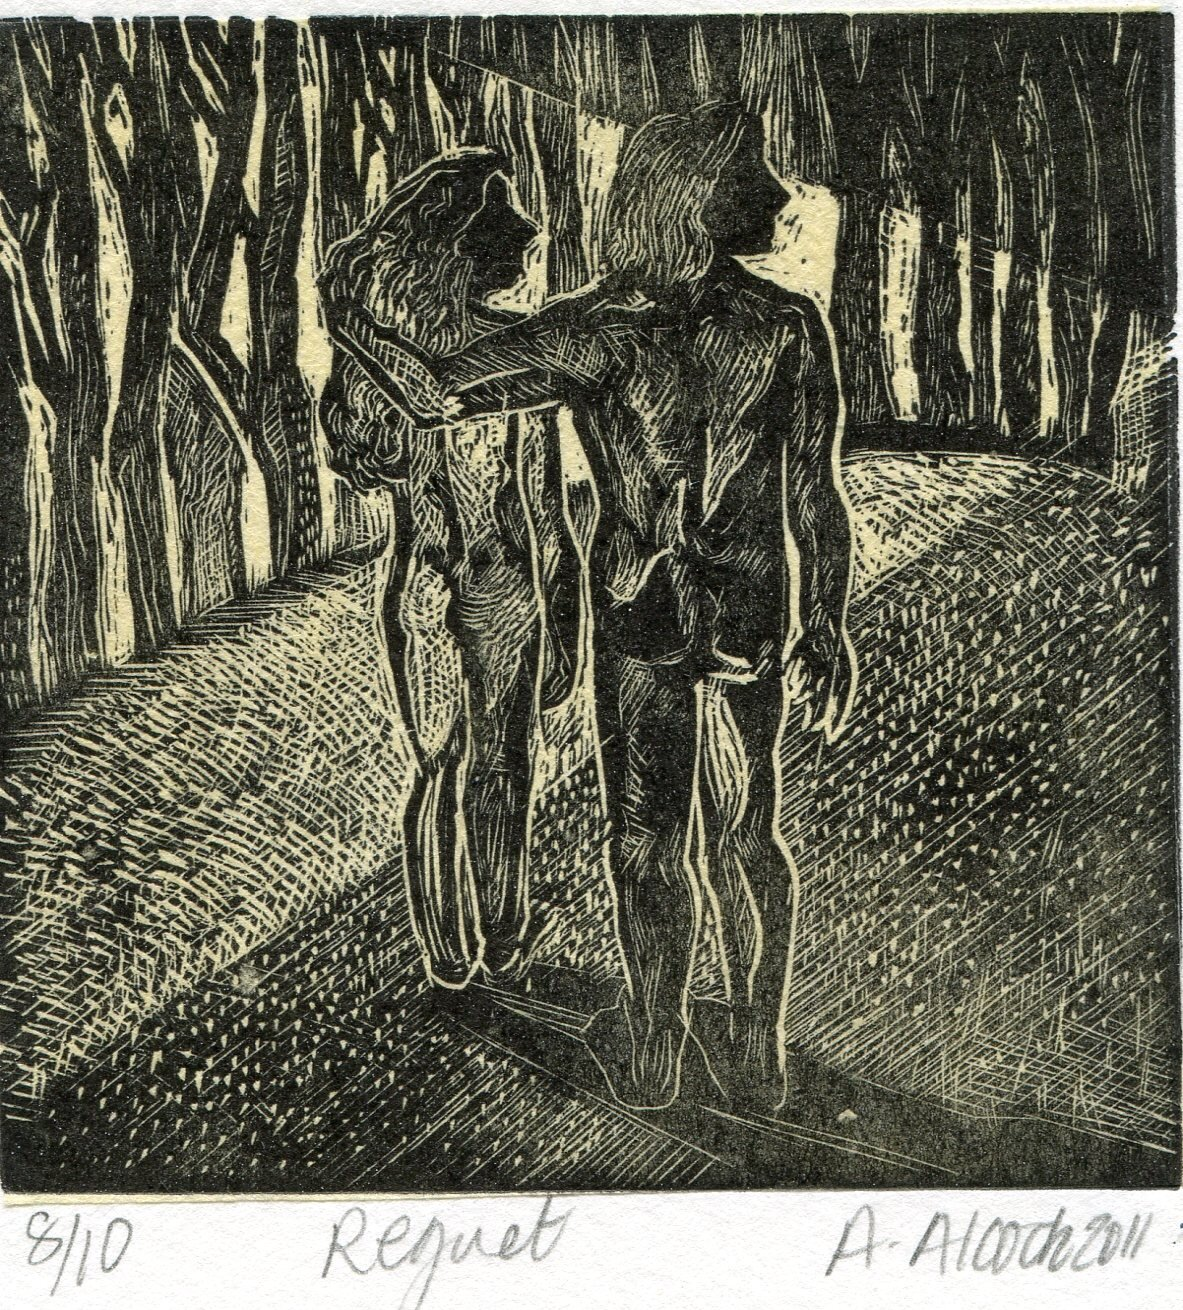 54a  Anna Alcock  Regret  wood engraving on paper